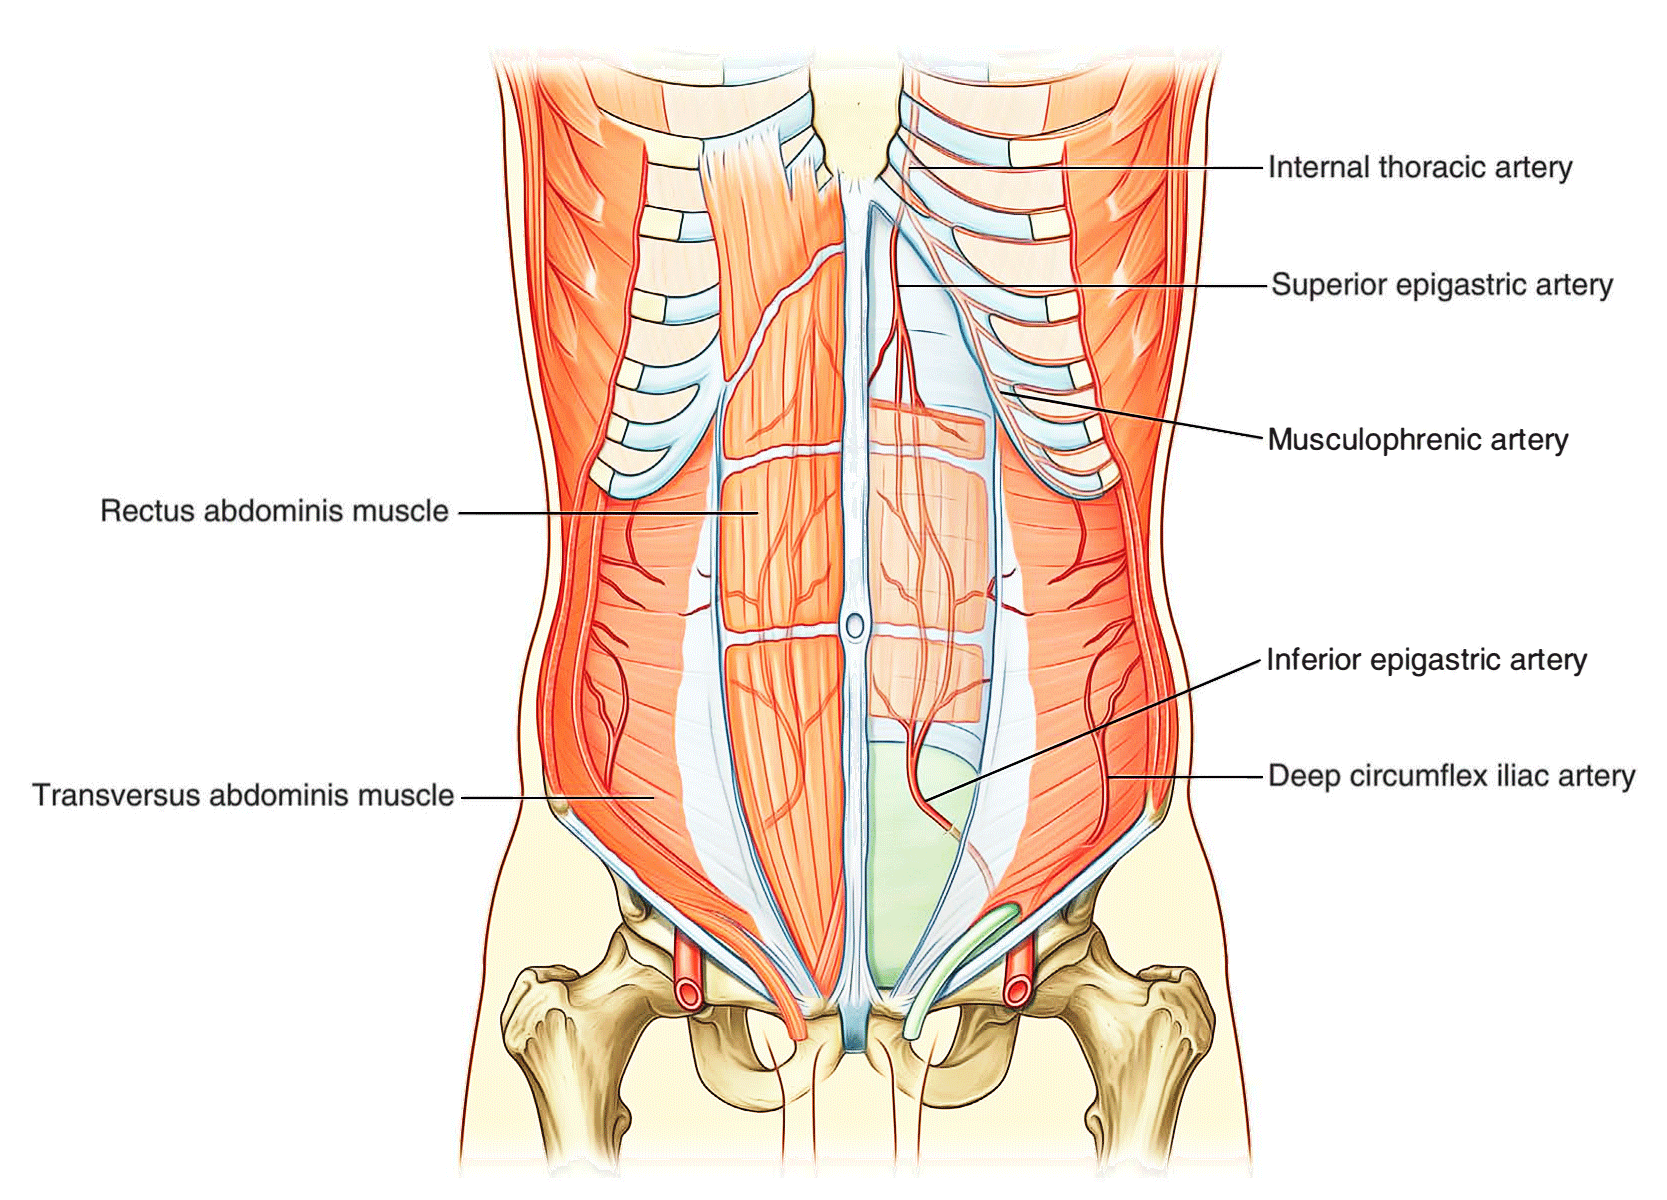 Easy Notes On 【Abdominal Wall】Learn in Just 3 Minutes!